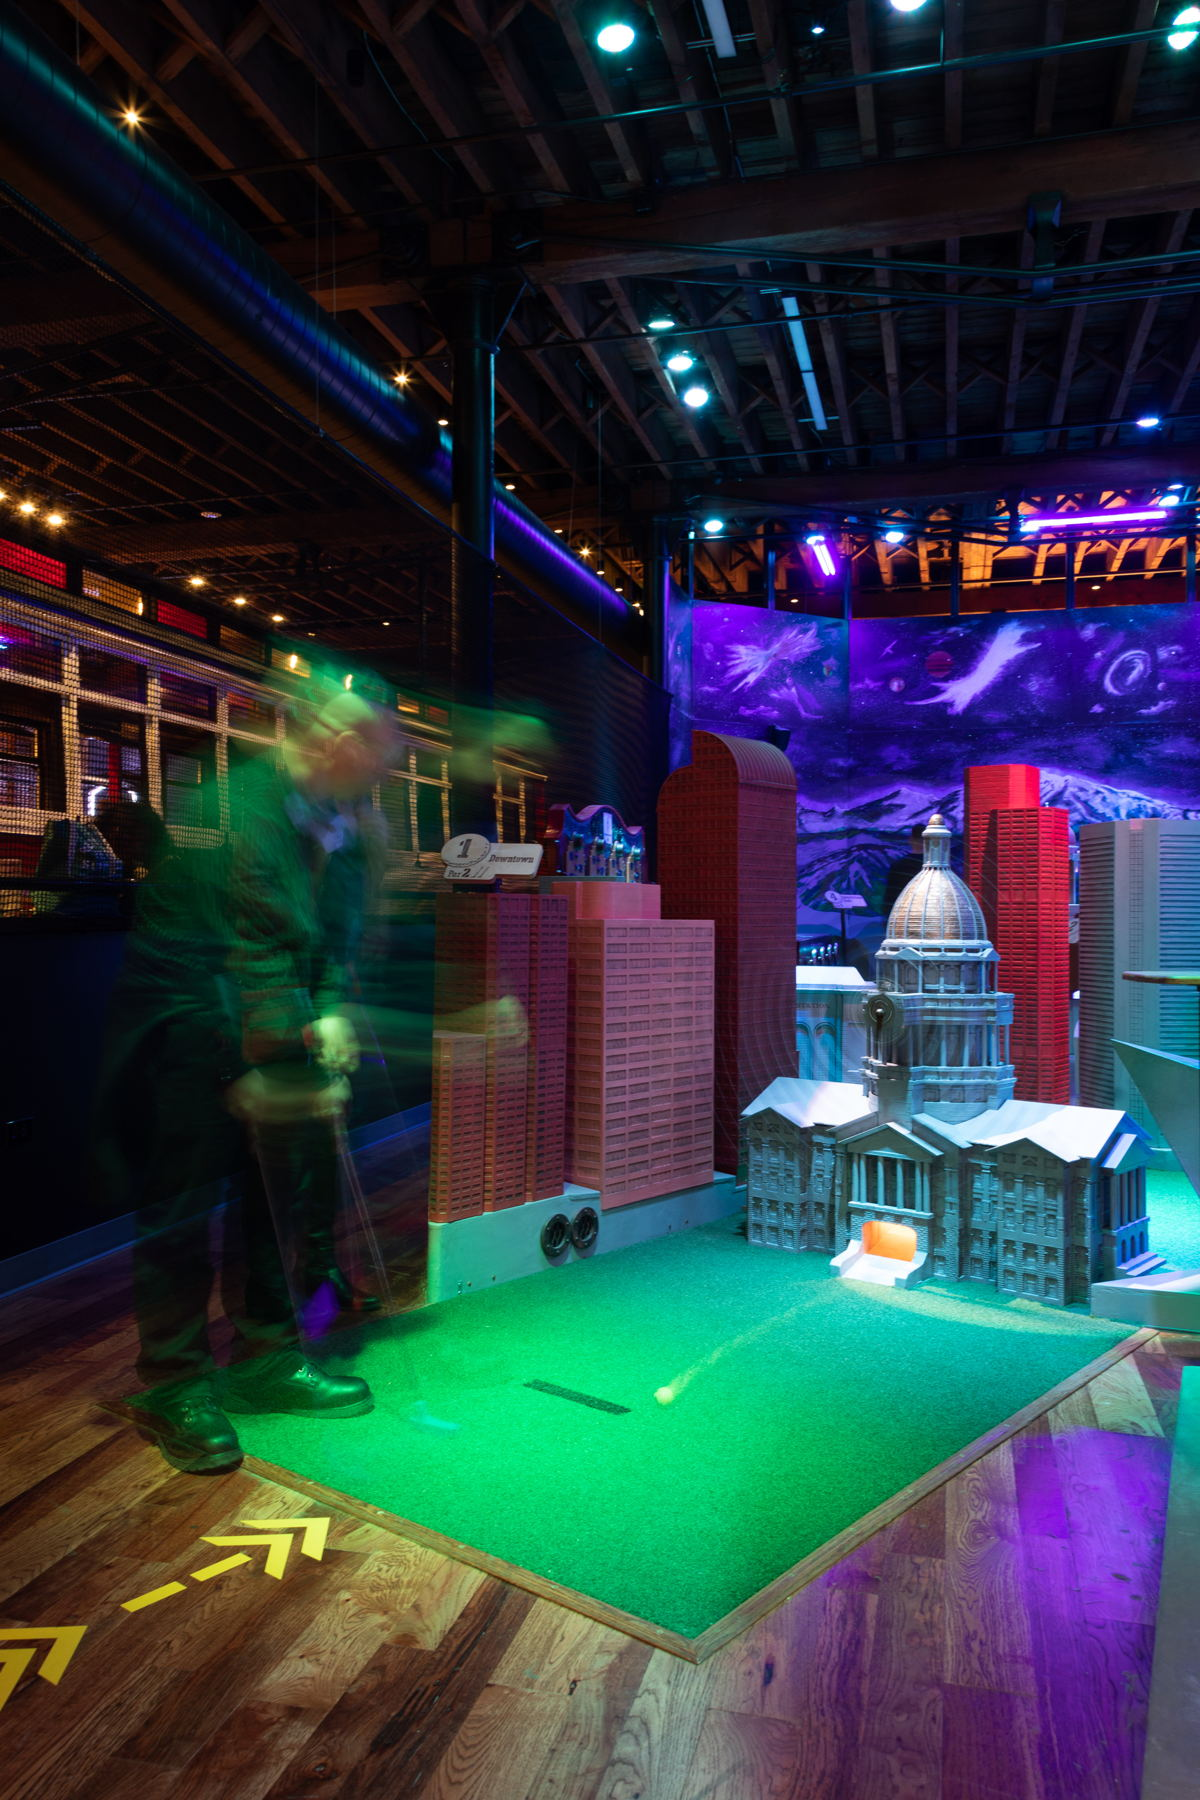 A player putts through the downtown Denver hole on one of Urban Putt's two, 9-hole courses. Photo credit: Jim Darling Photography